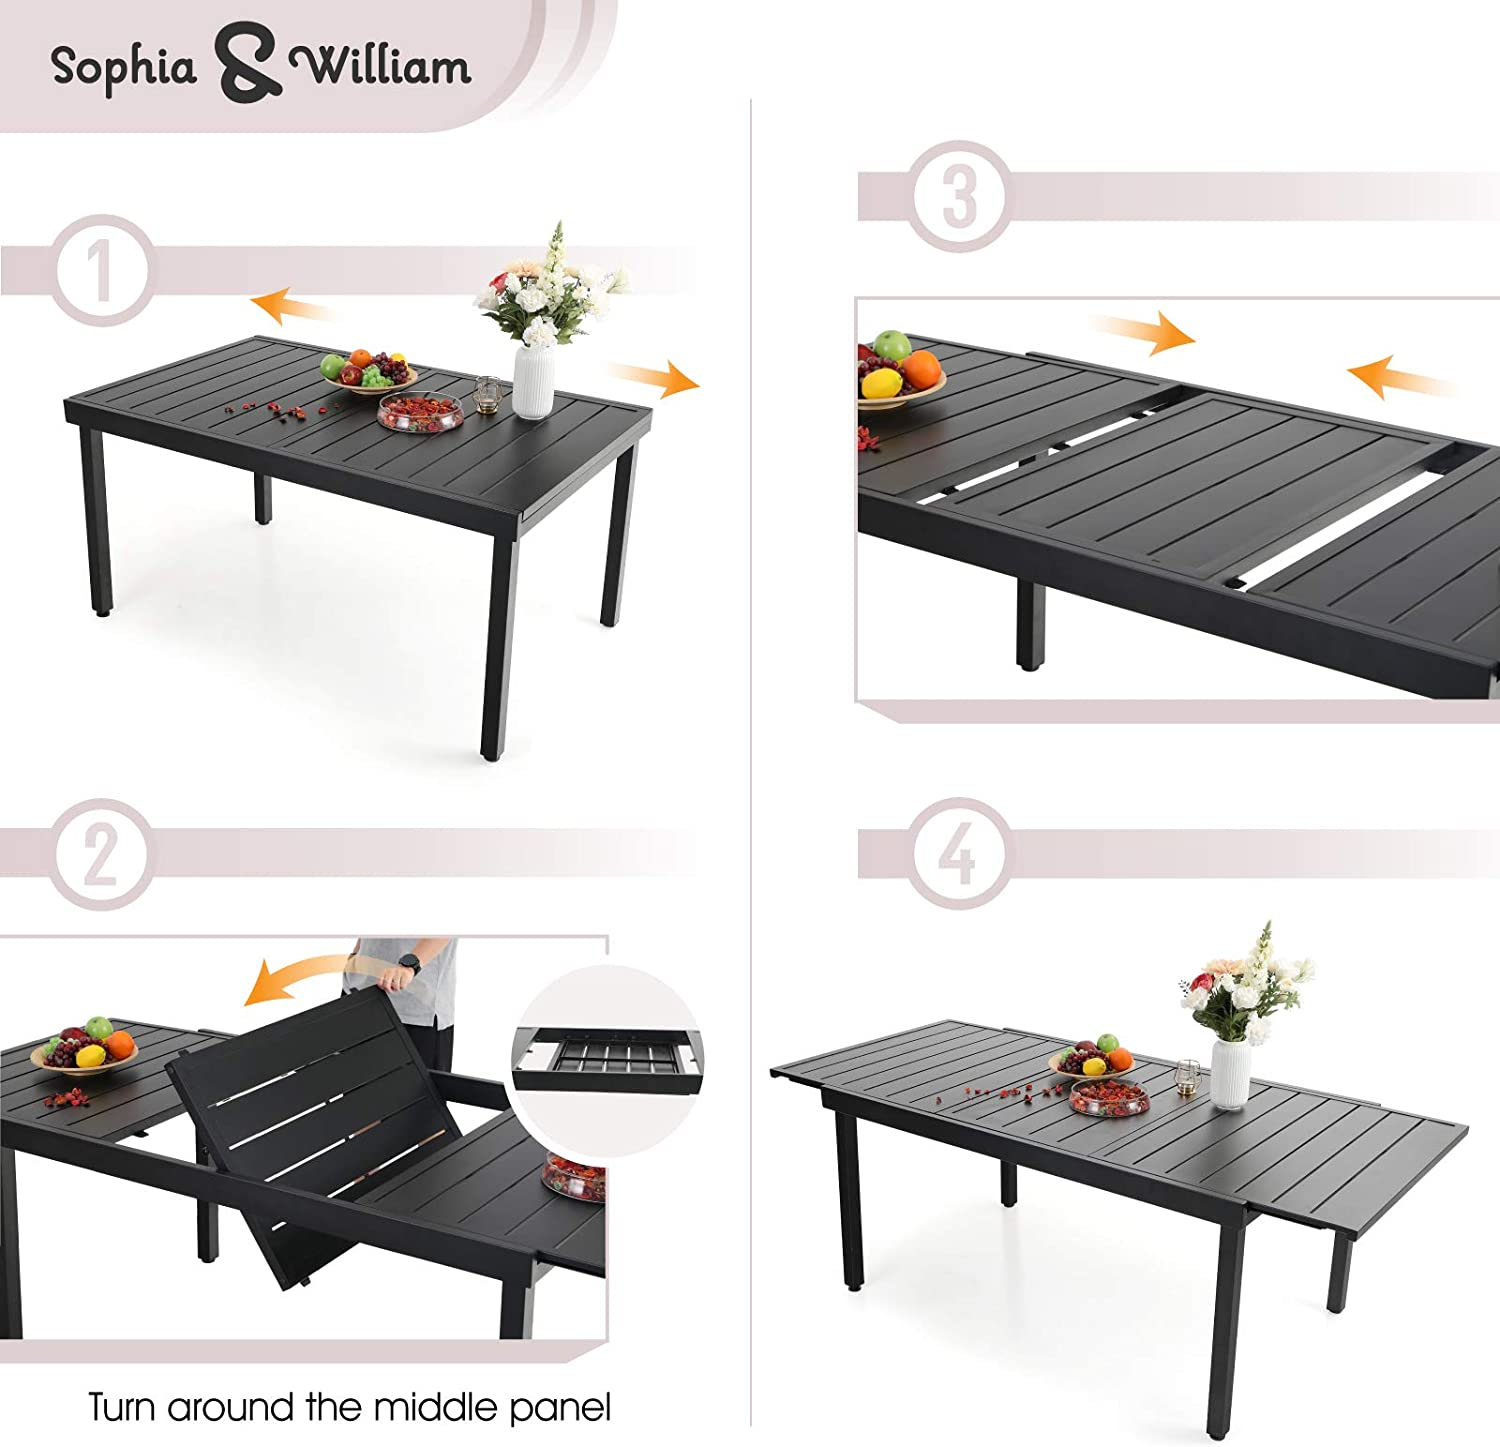 Best for Saving Space: Sophia & William Black Expandable Patio Dining Table.